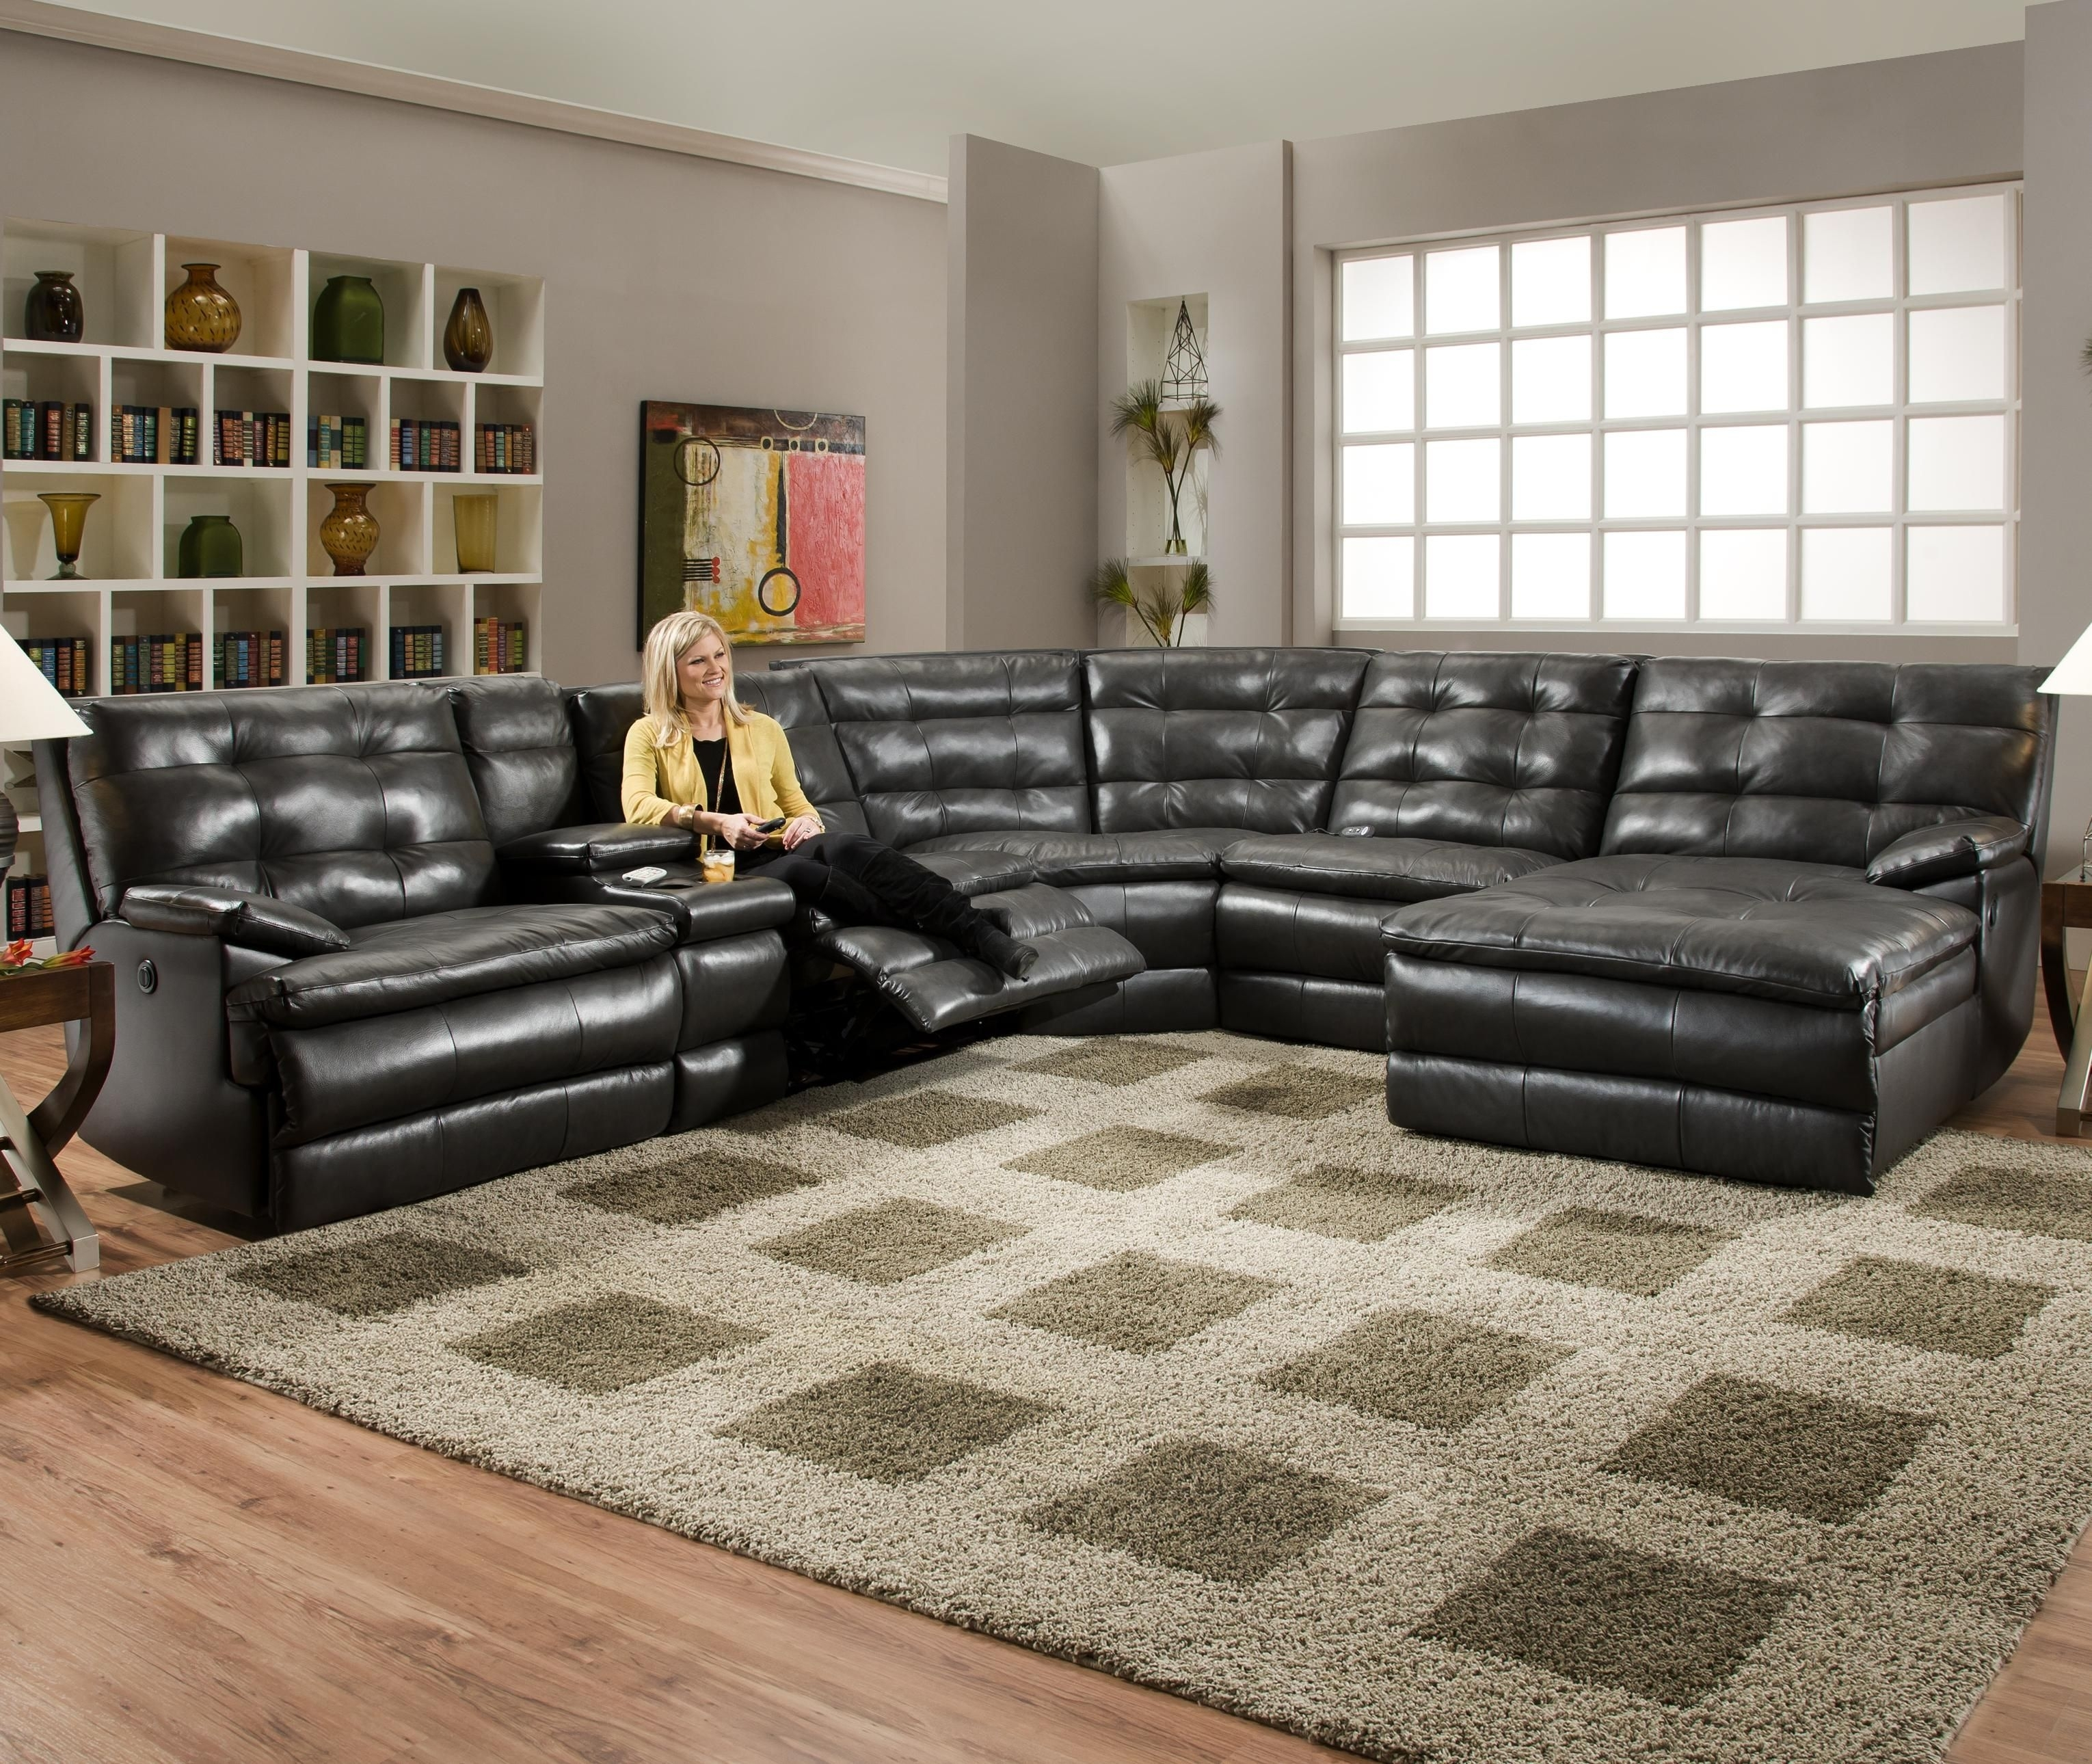 Luxurious Tufted Leather Sectional Sofa In Classy Black Color With For Marcus Chocolate 6 Piece Sectionals With Power Headrest And Usb (View 21 of 25)